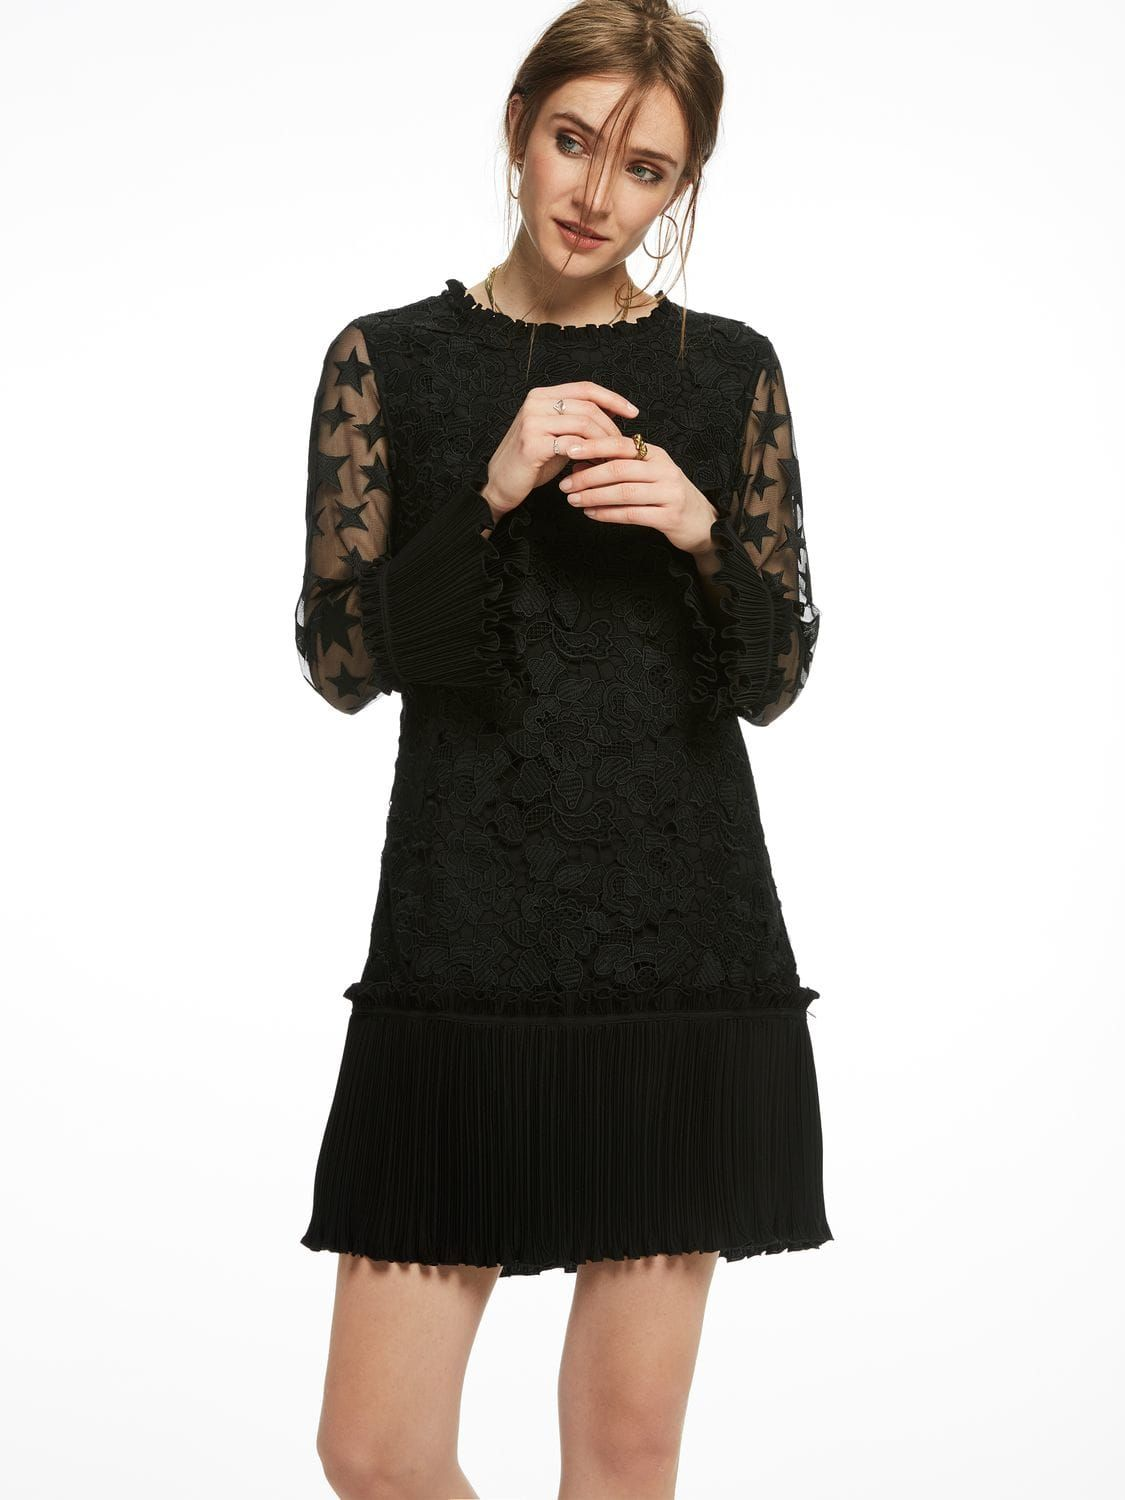 3326641c3d98 Star Mesh Lace Party Dress - by Scotch & Soda | Fashion | Lace party ...